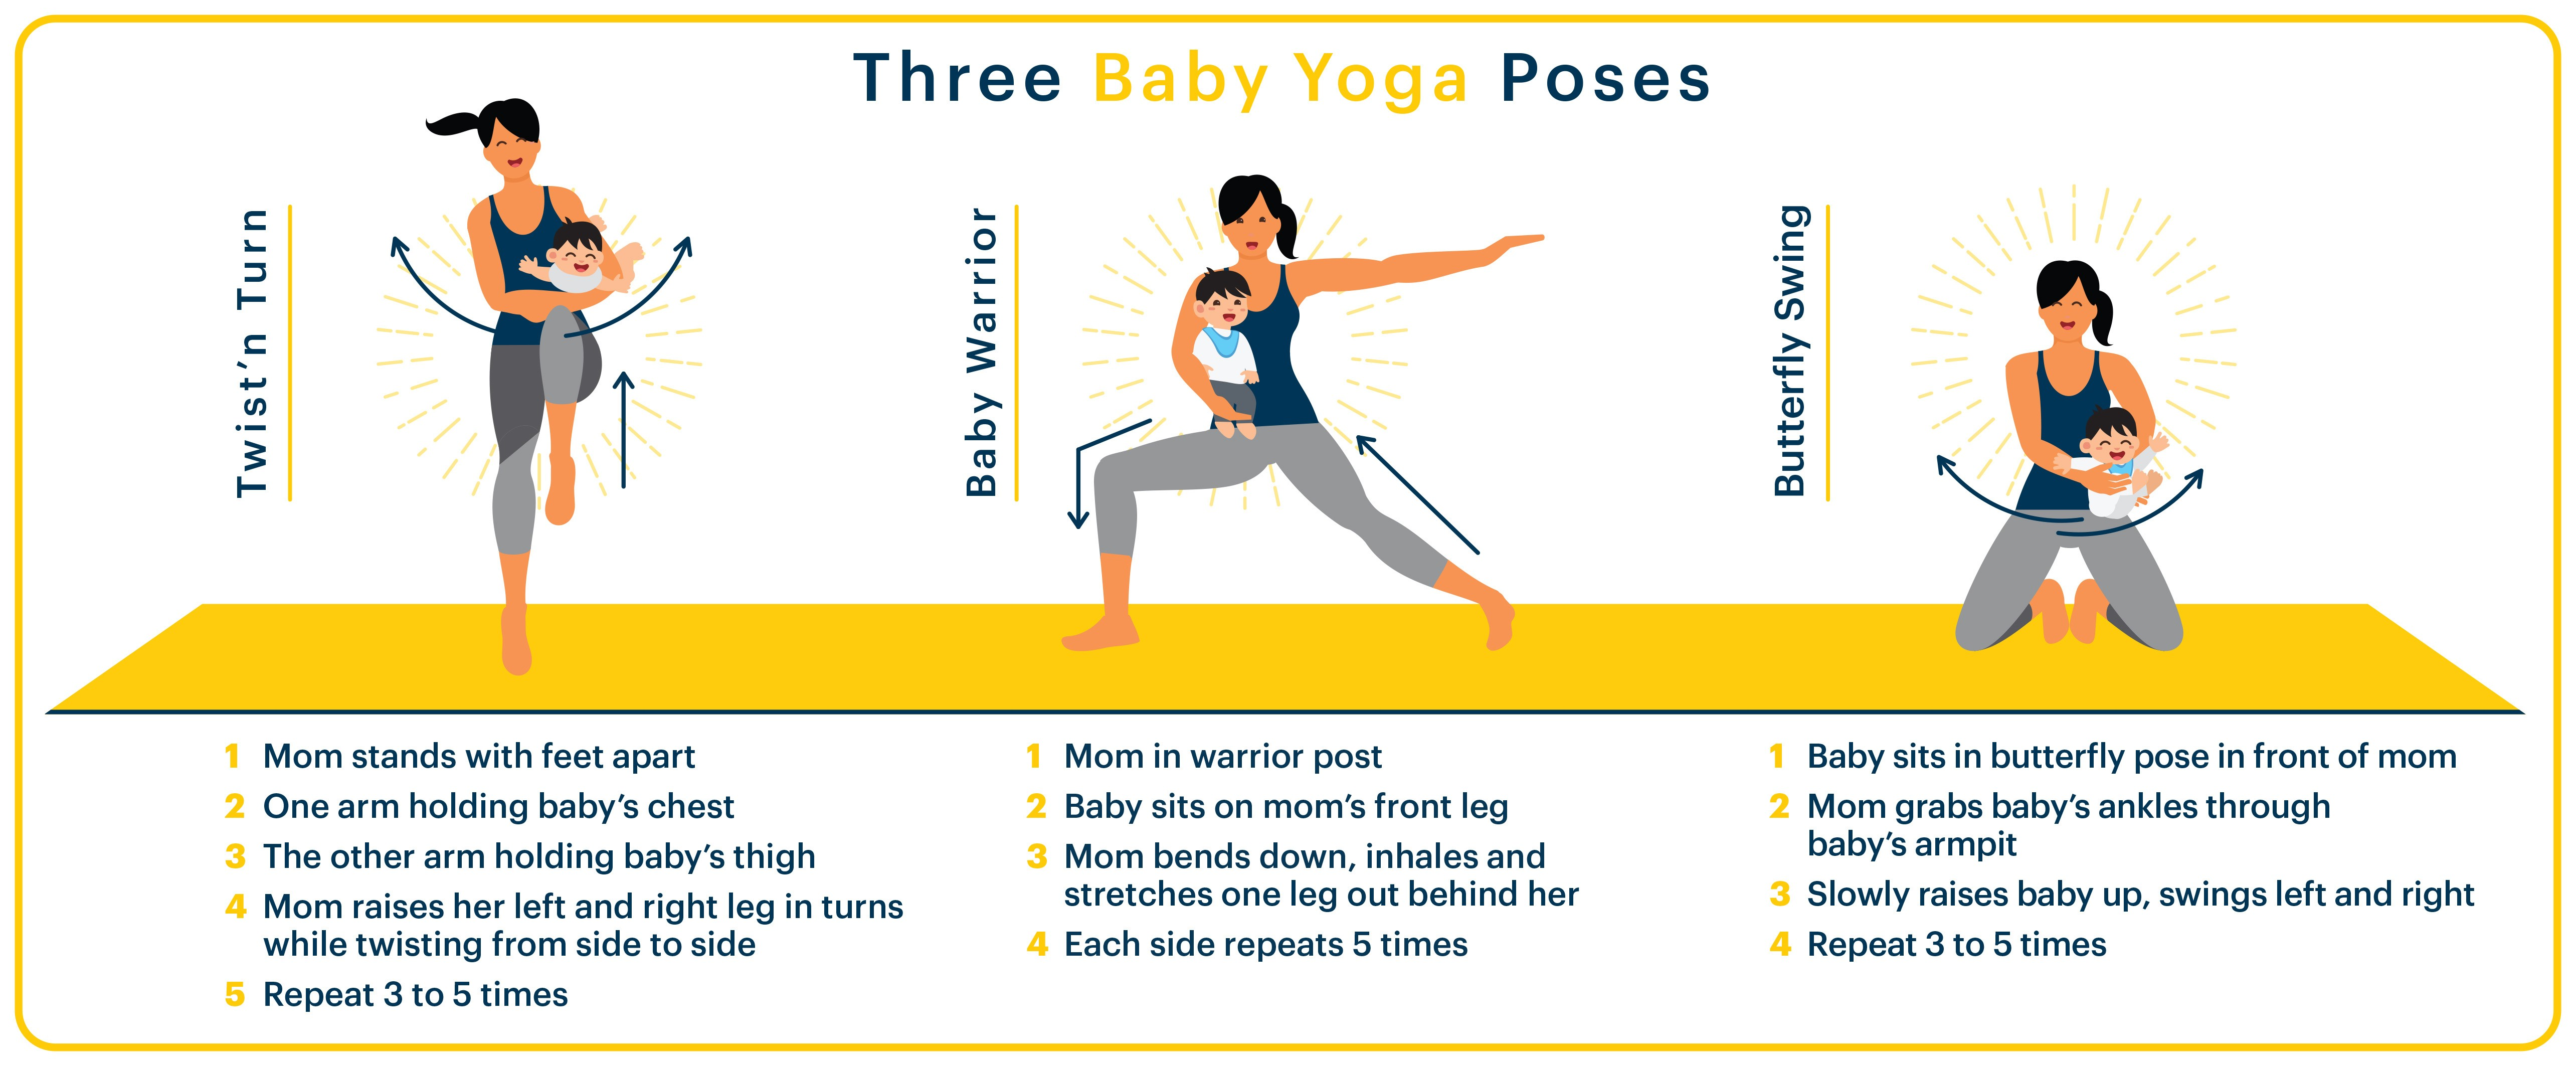 Three baby yoga poses create parent-child moments.